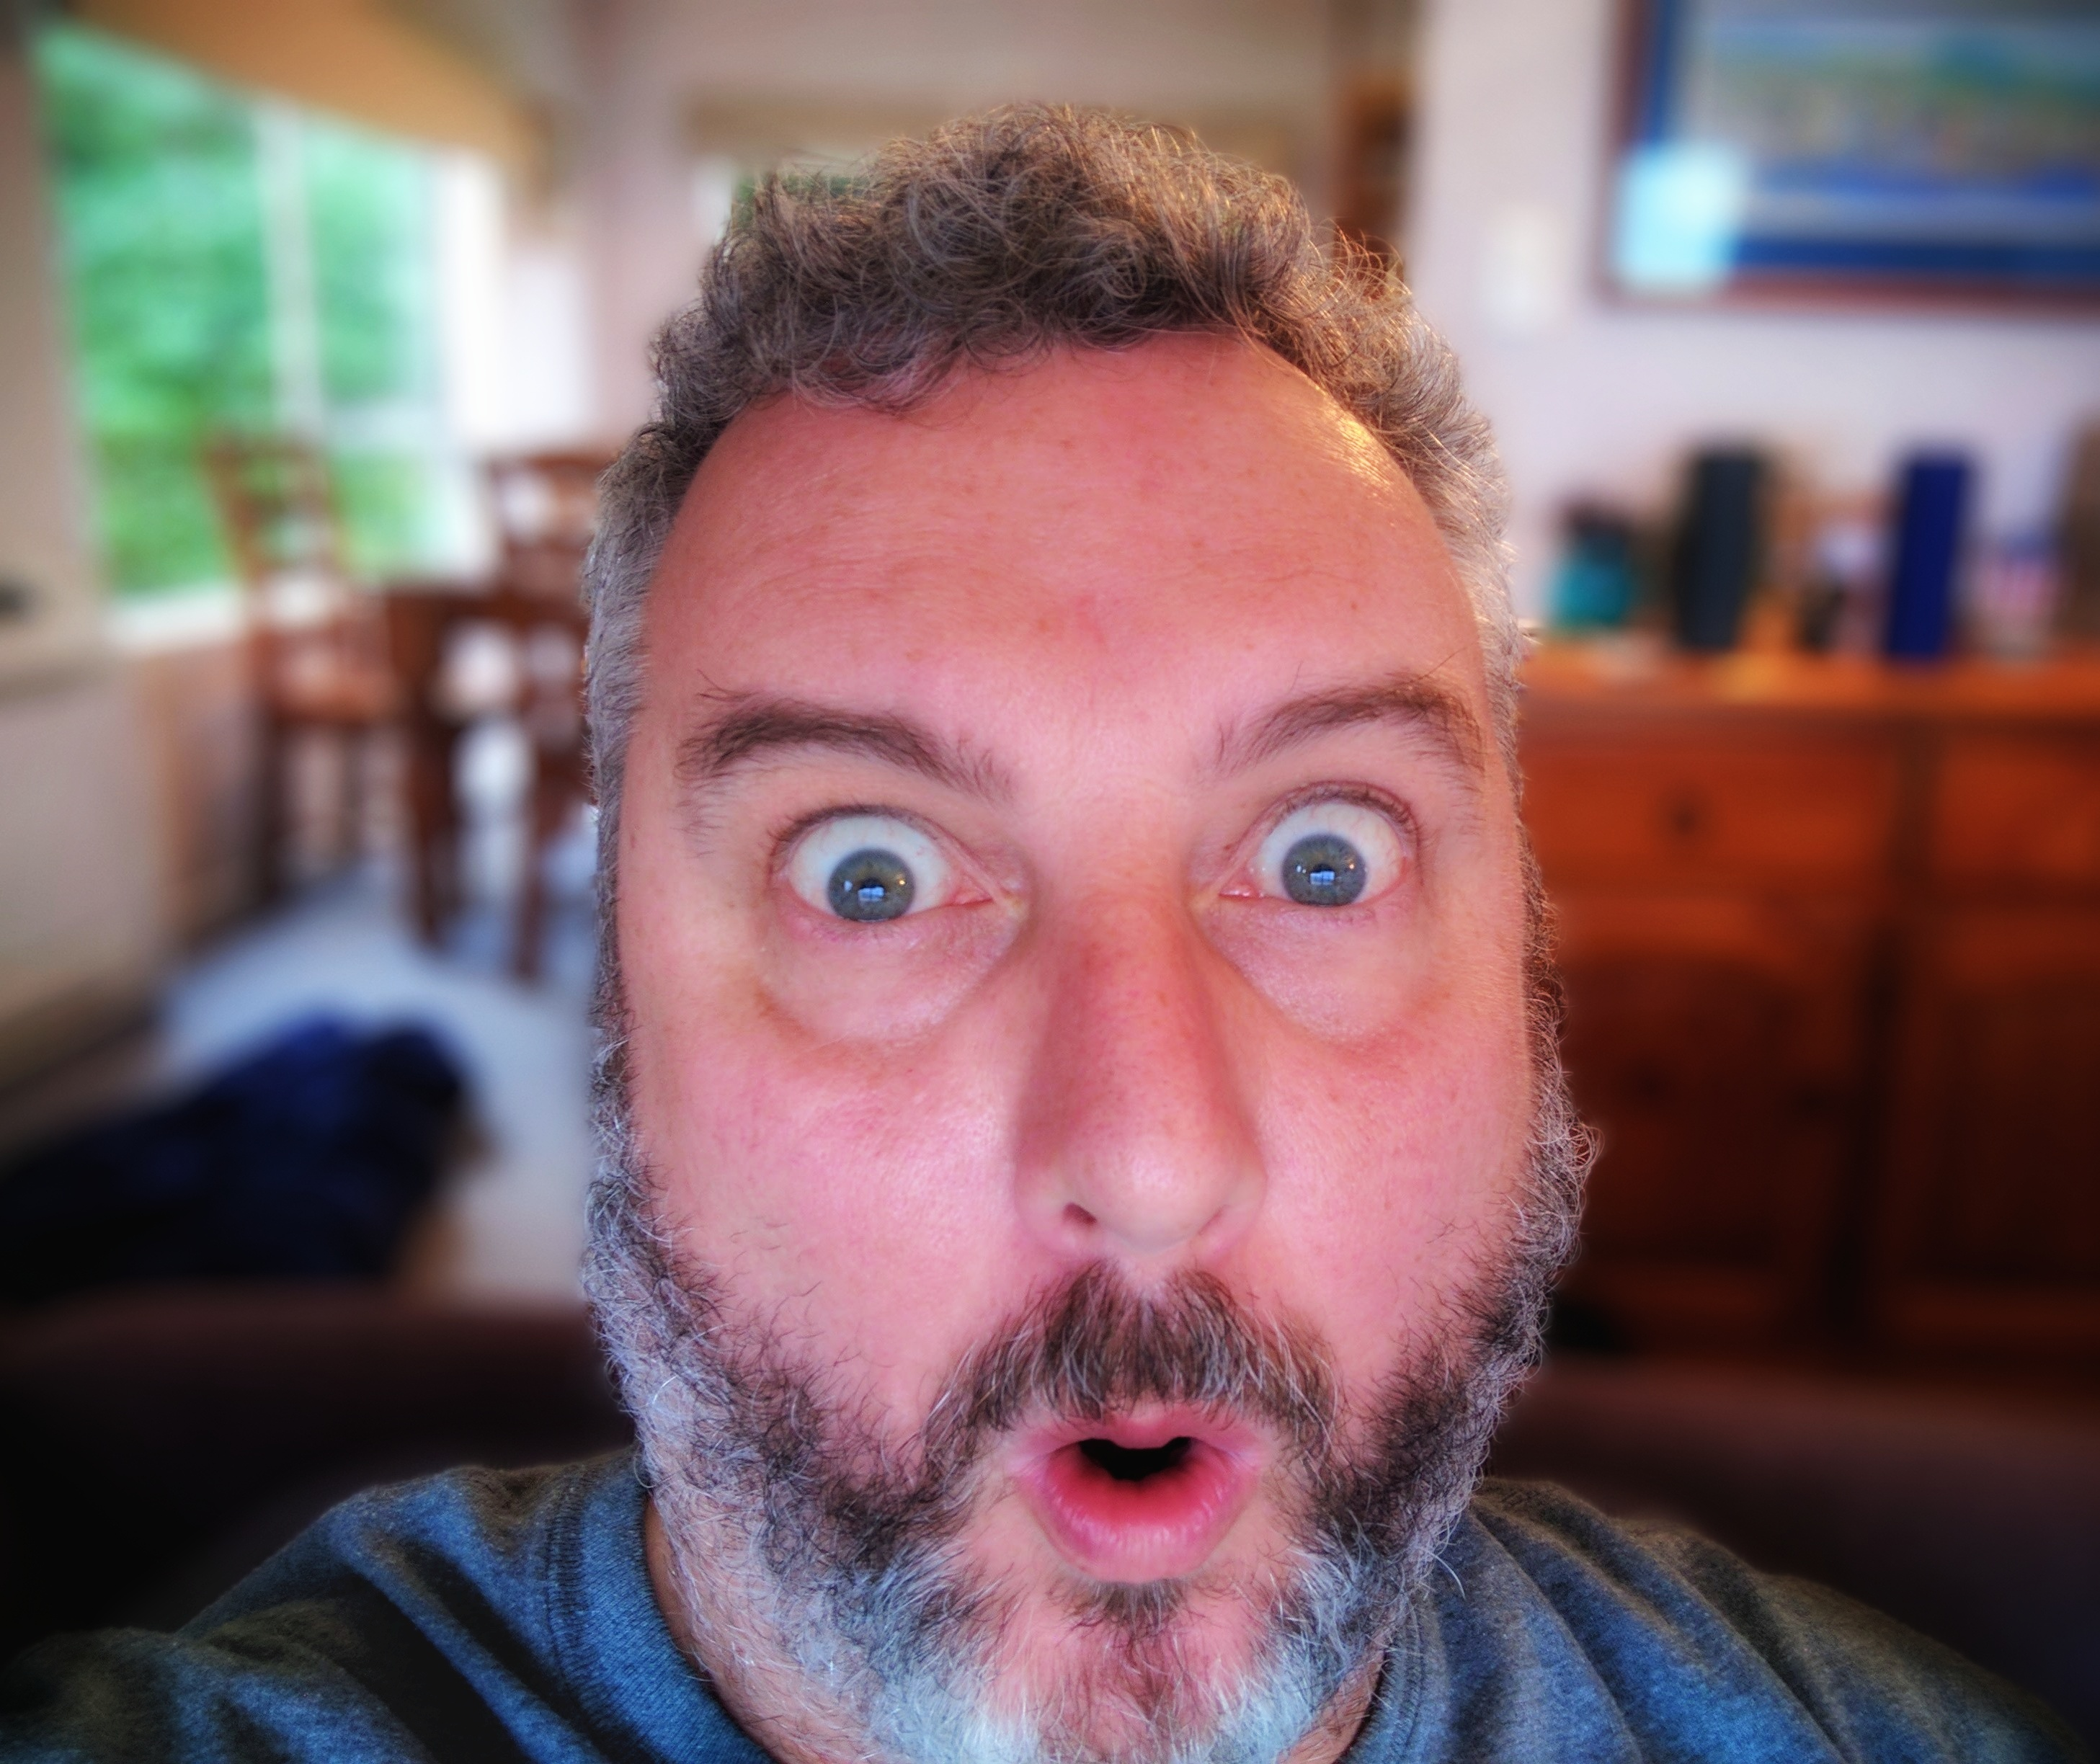 Bearded man pulling a shocked face